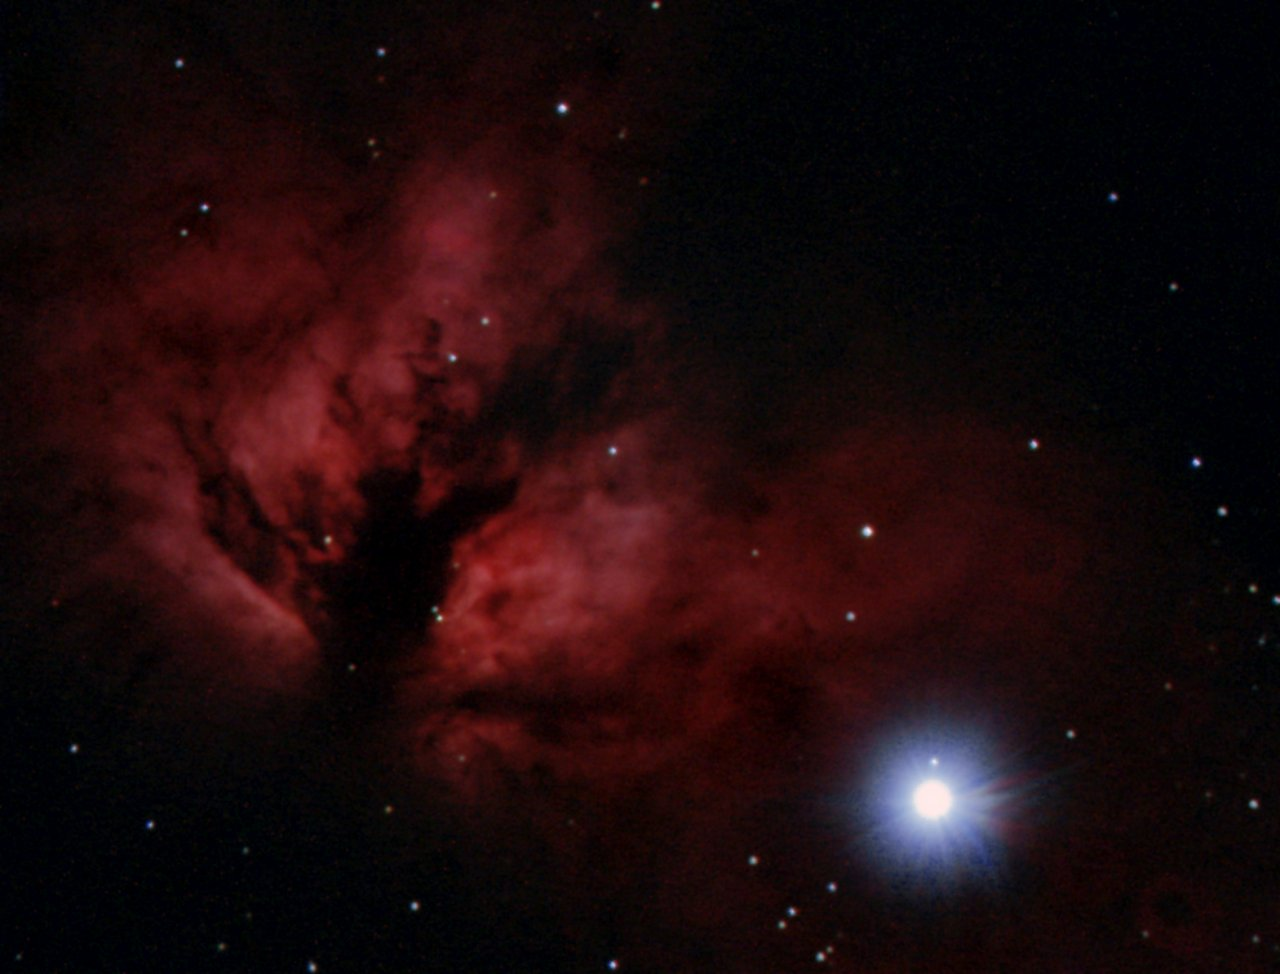 NGC2924, the Flame Nebula